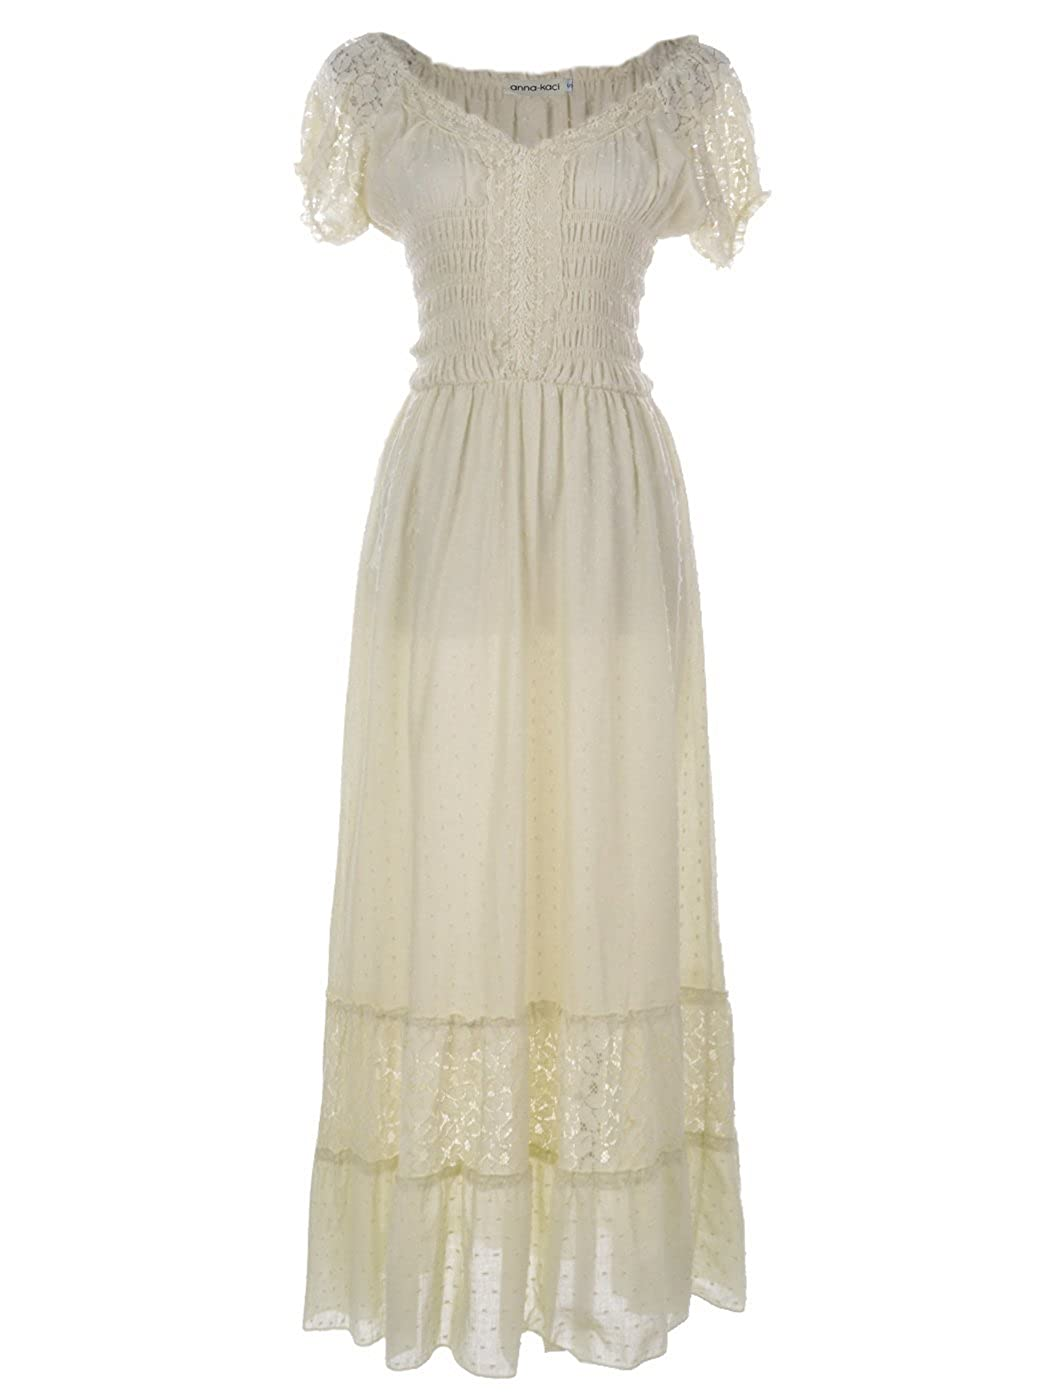 Edwardian Ladies Clothing – 1900, 1910s, Titanic Era Anna-Kaci Renaissance Peasant Maiden Boho Inspired Cap Sleeve Lace Trim Dress $39.99 AT vintagedancer.com